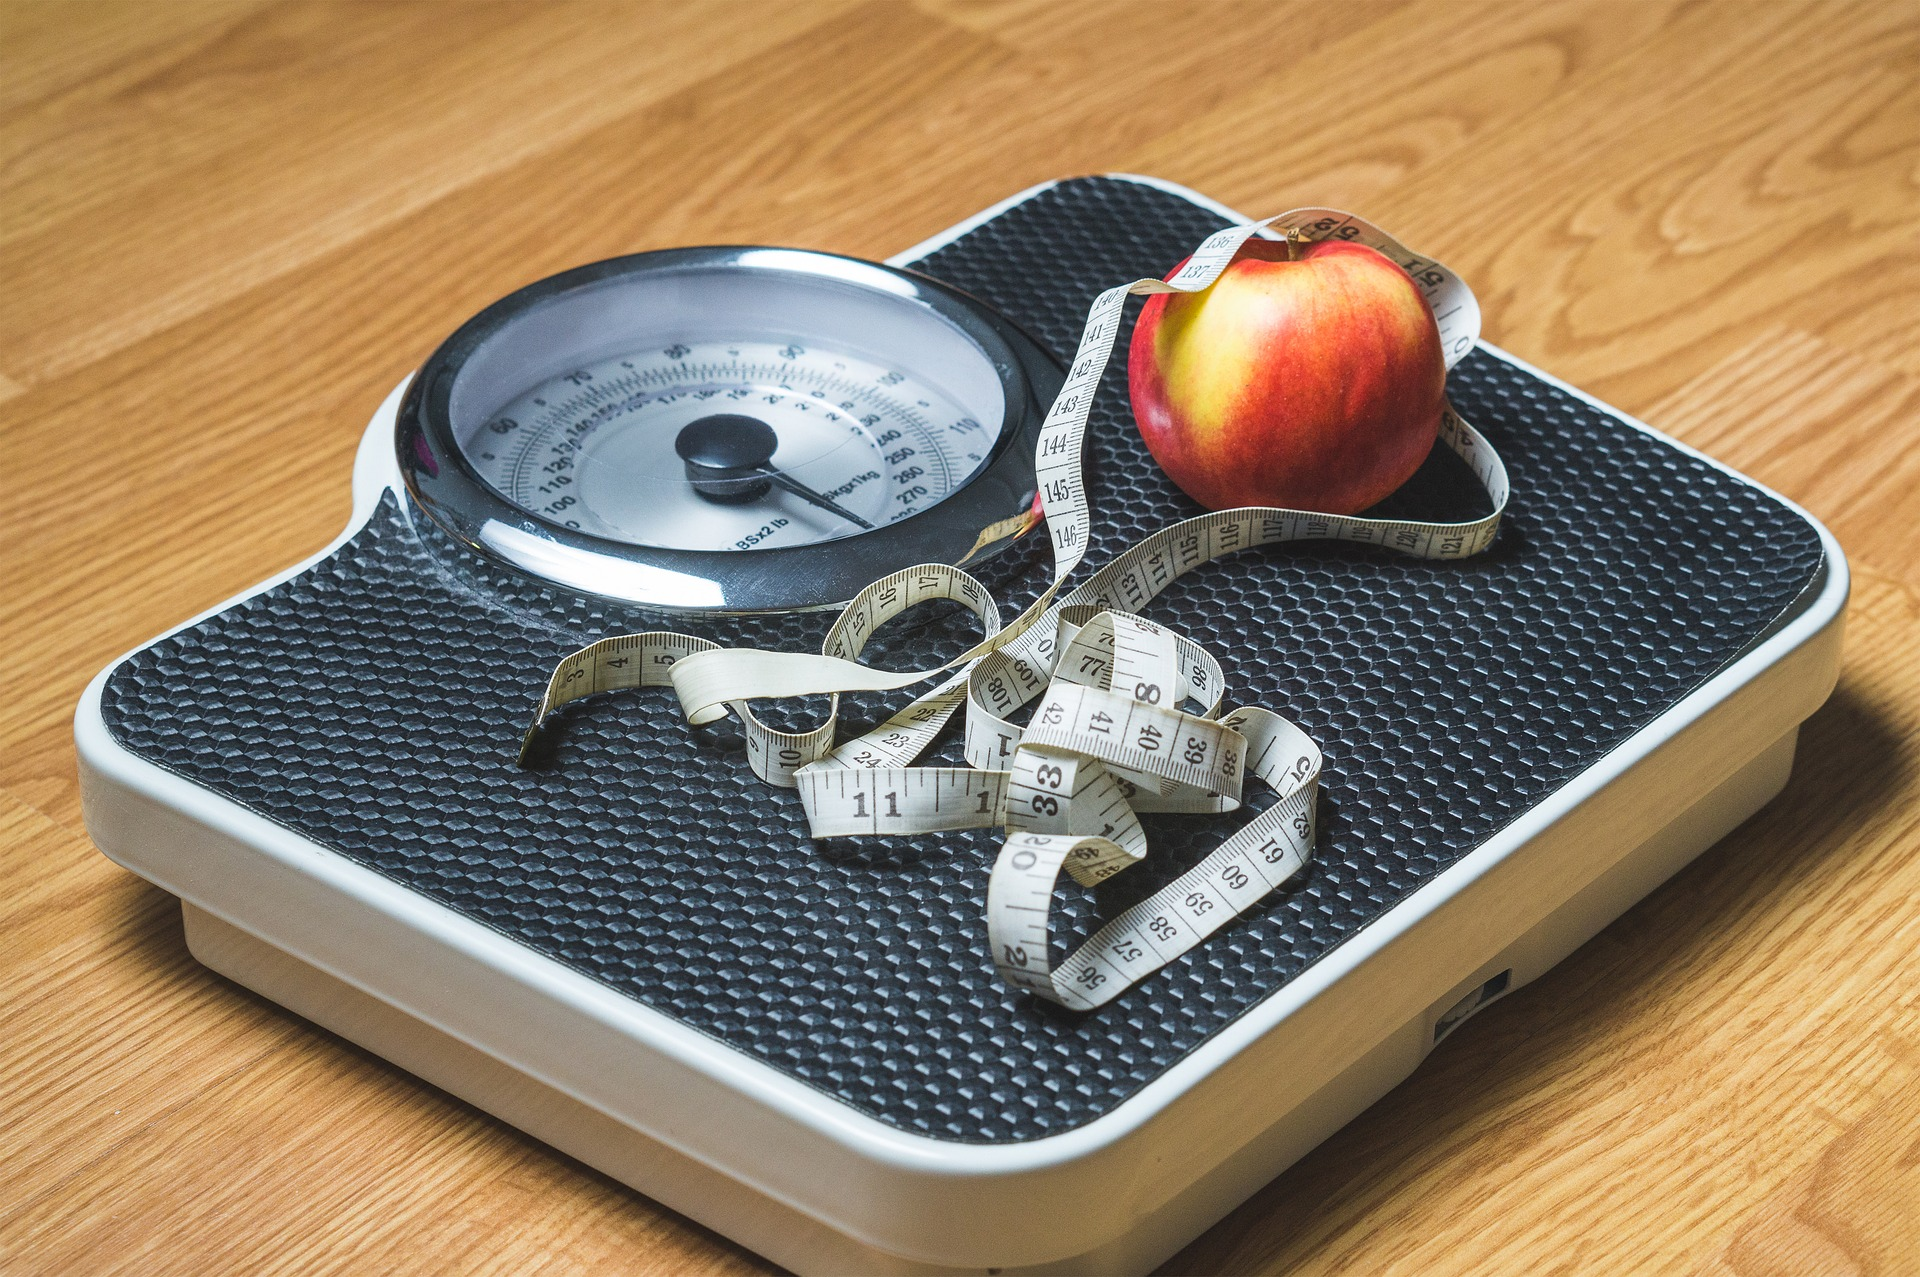 How to lose weight with weight loss friendly foods